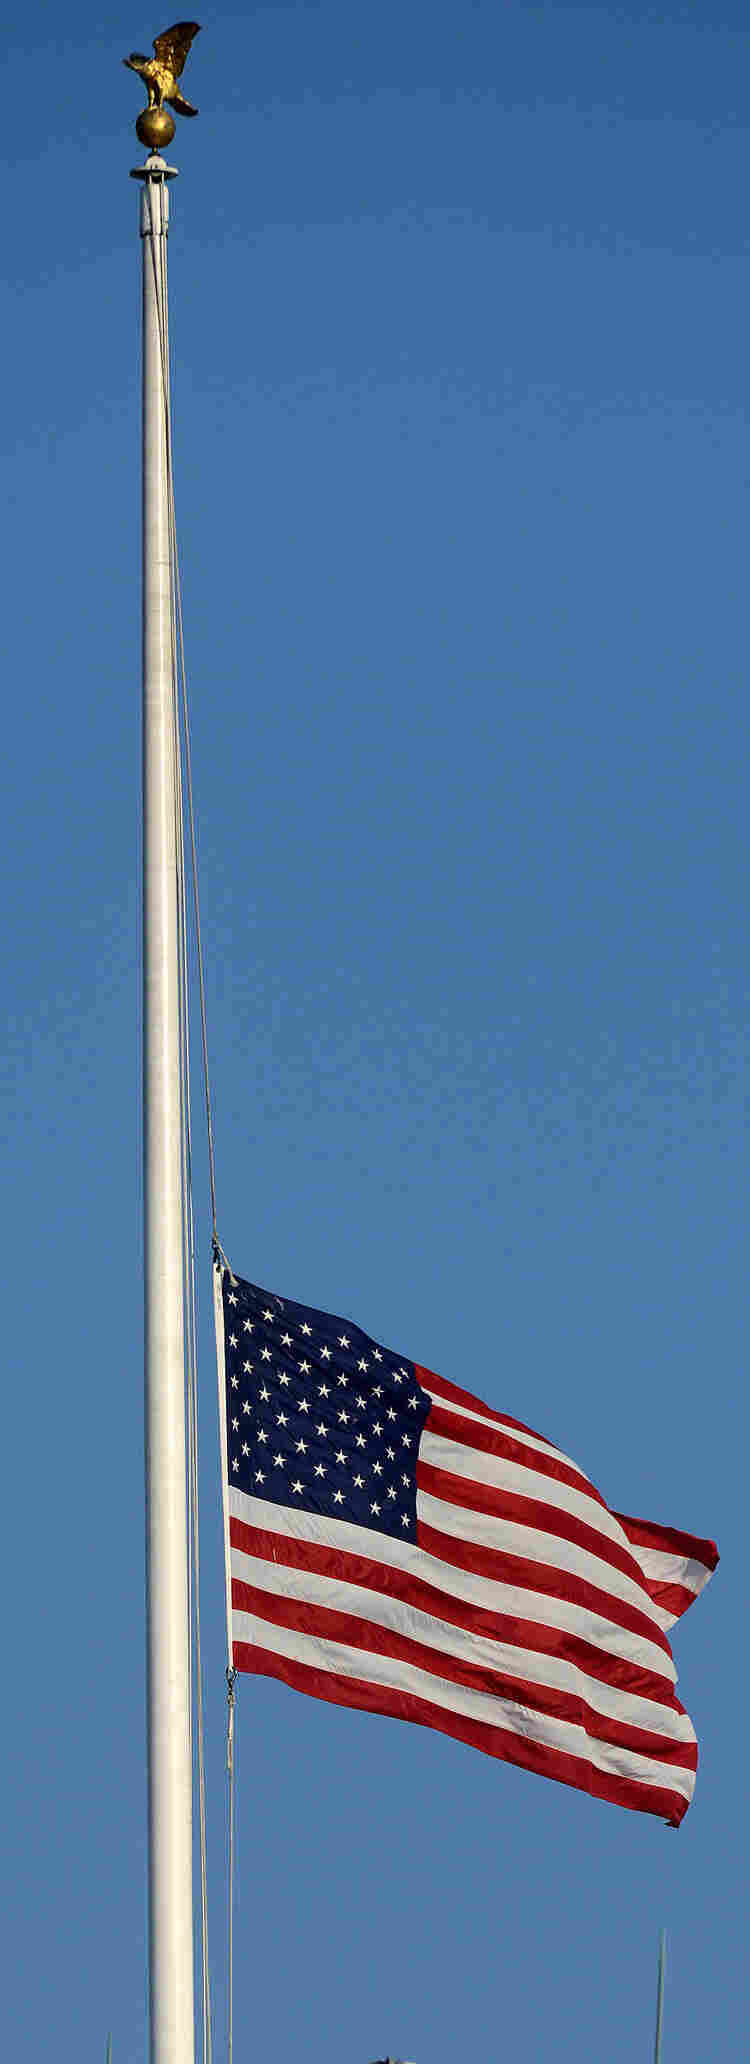 The American flag flies at half-staff atop the White House on Monday.